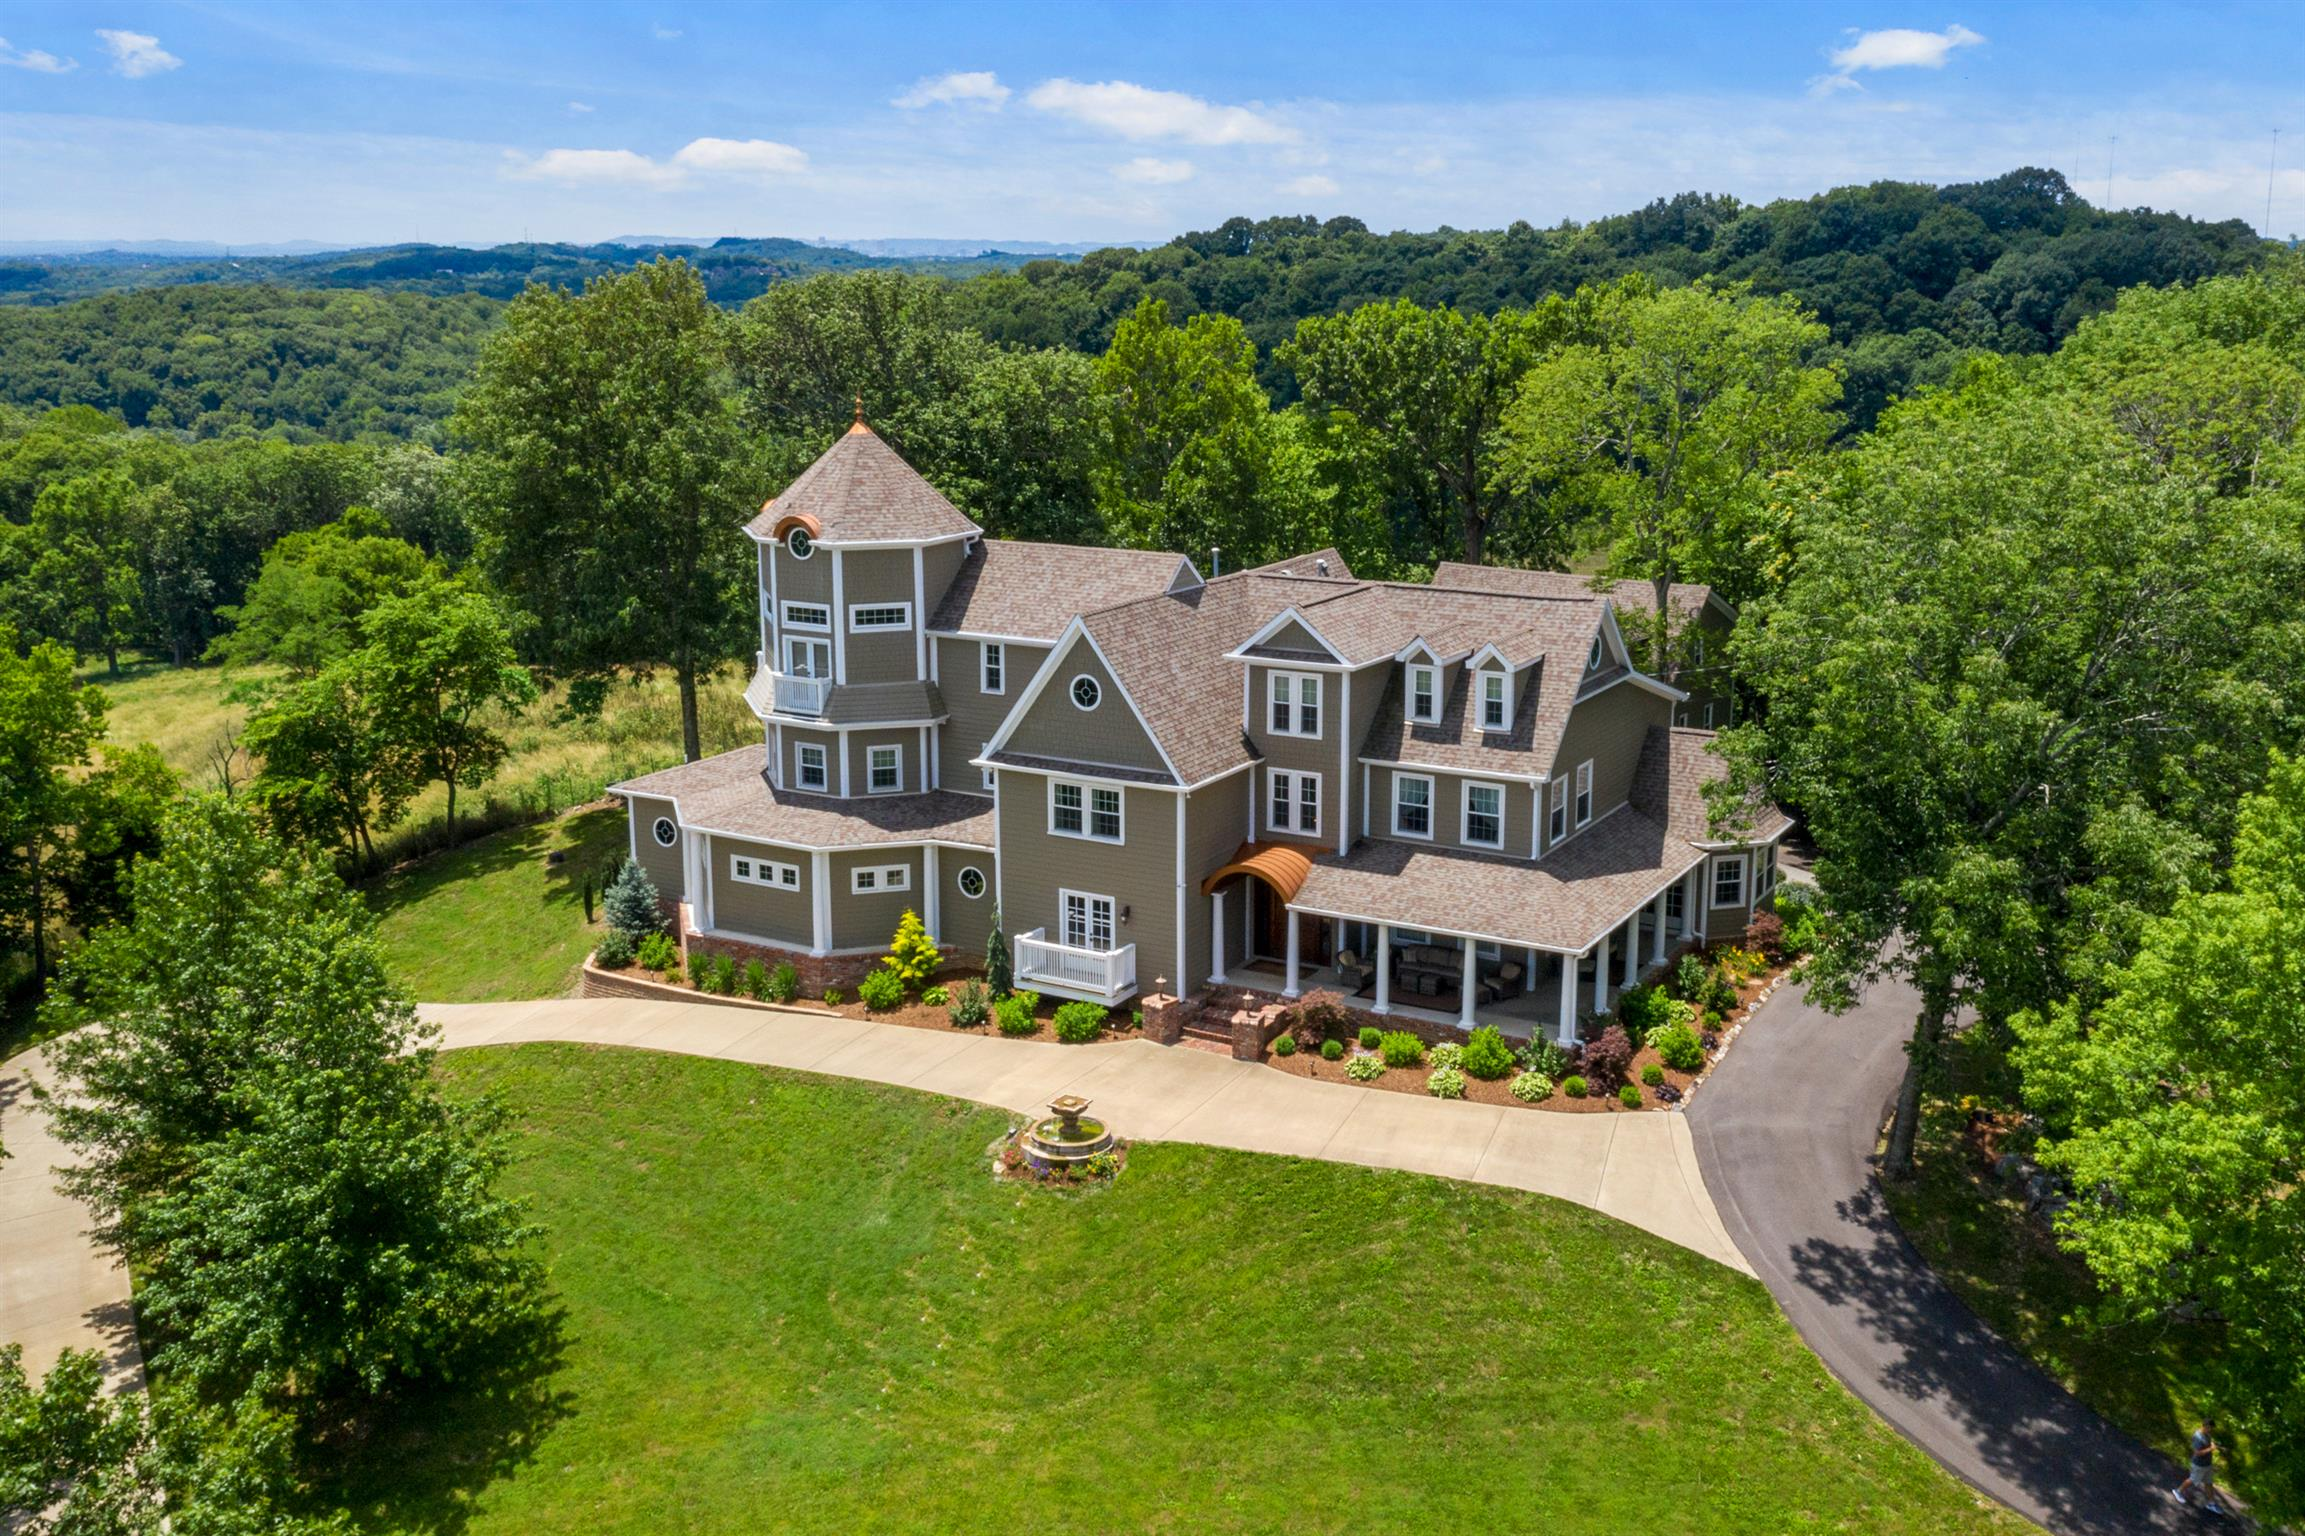 $1,795,000 - 5Br/7Ba -  for Sale in M O Shane Property, Goodlettsville